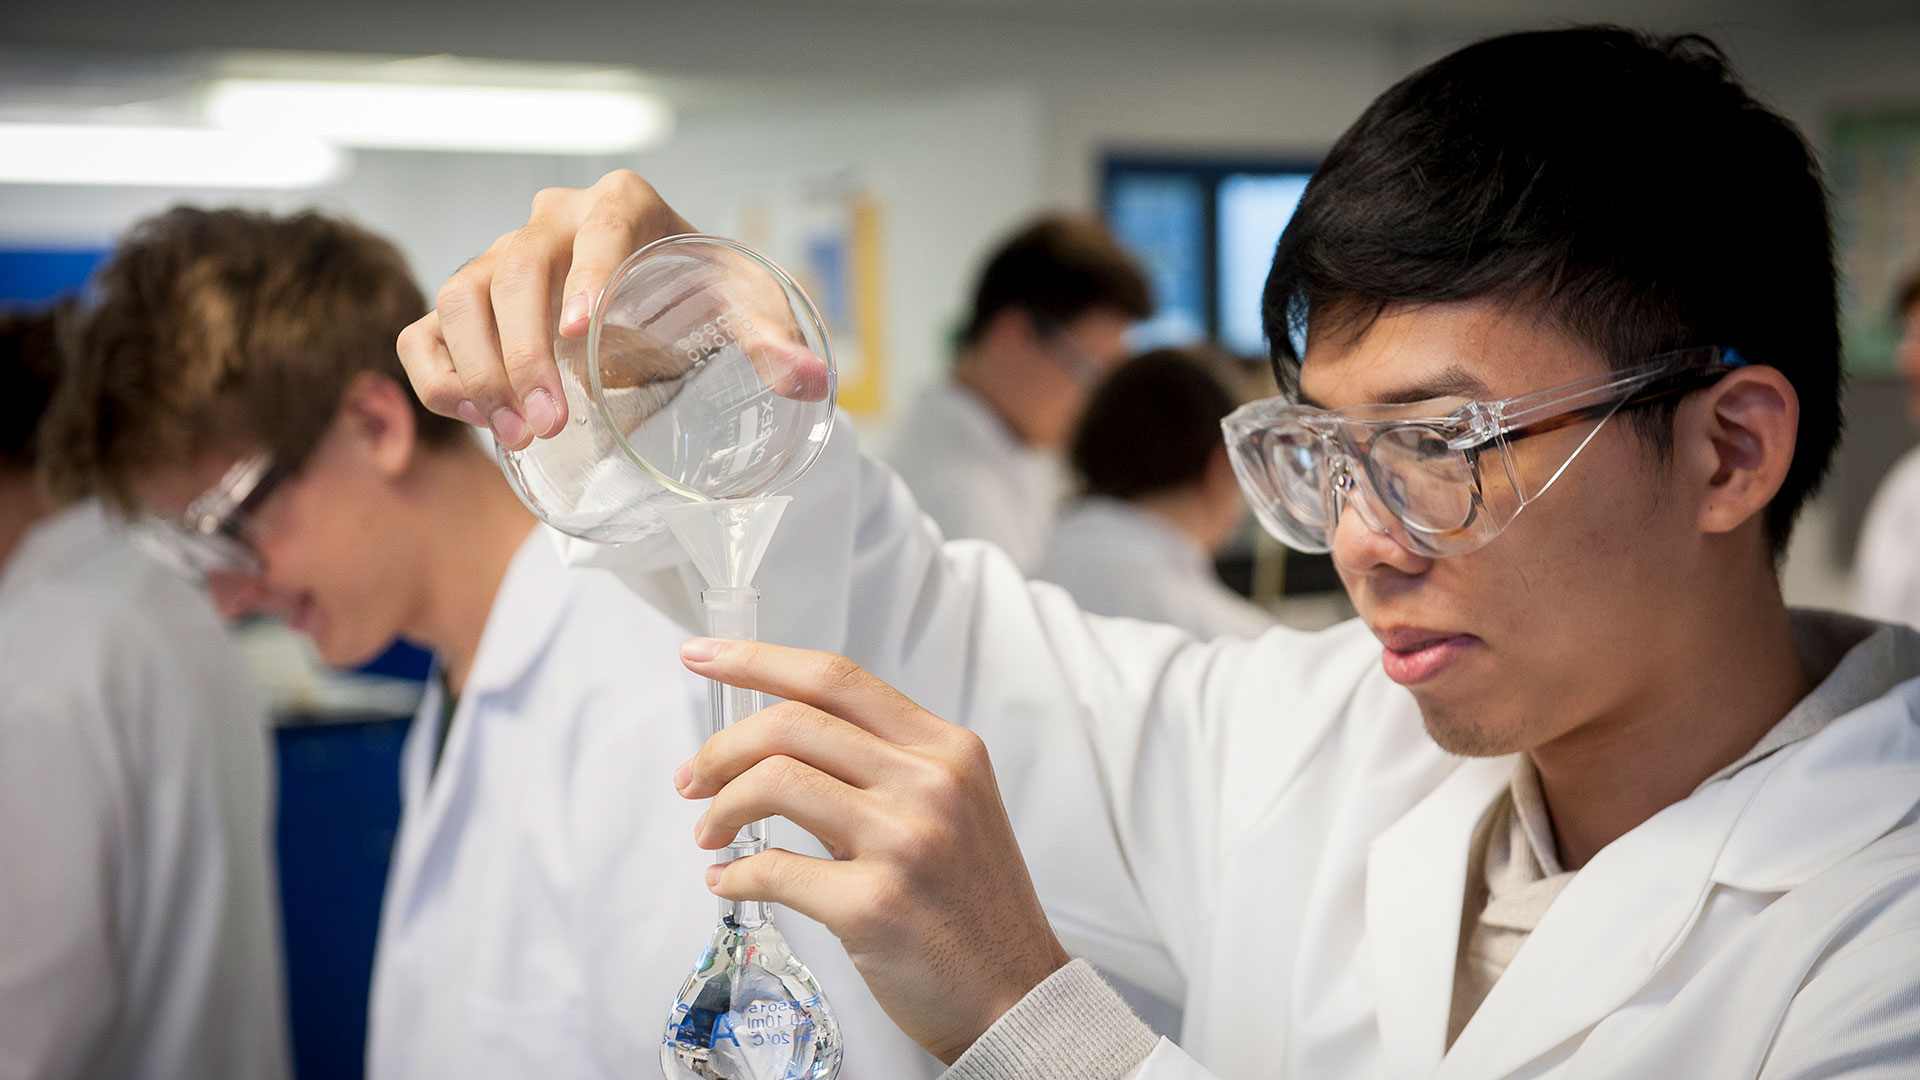 Students in the undergraduate chemistry lab